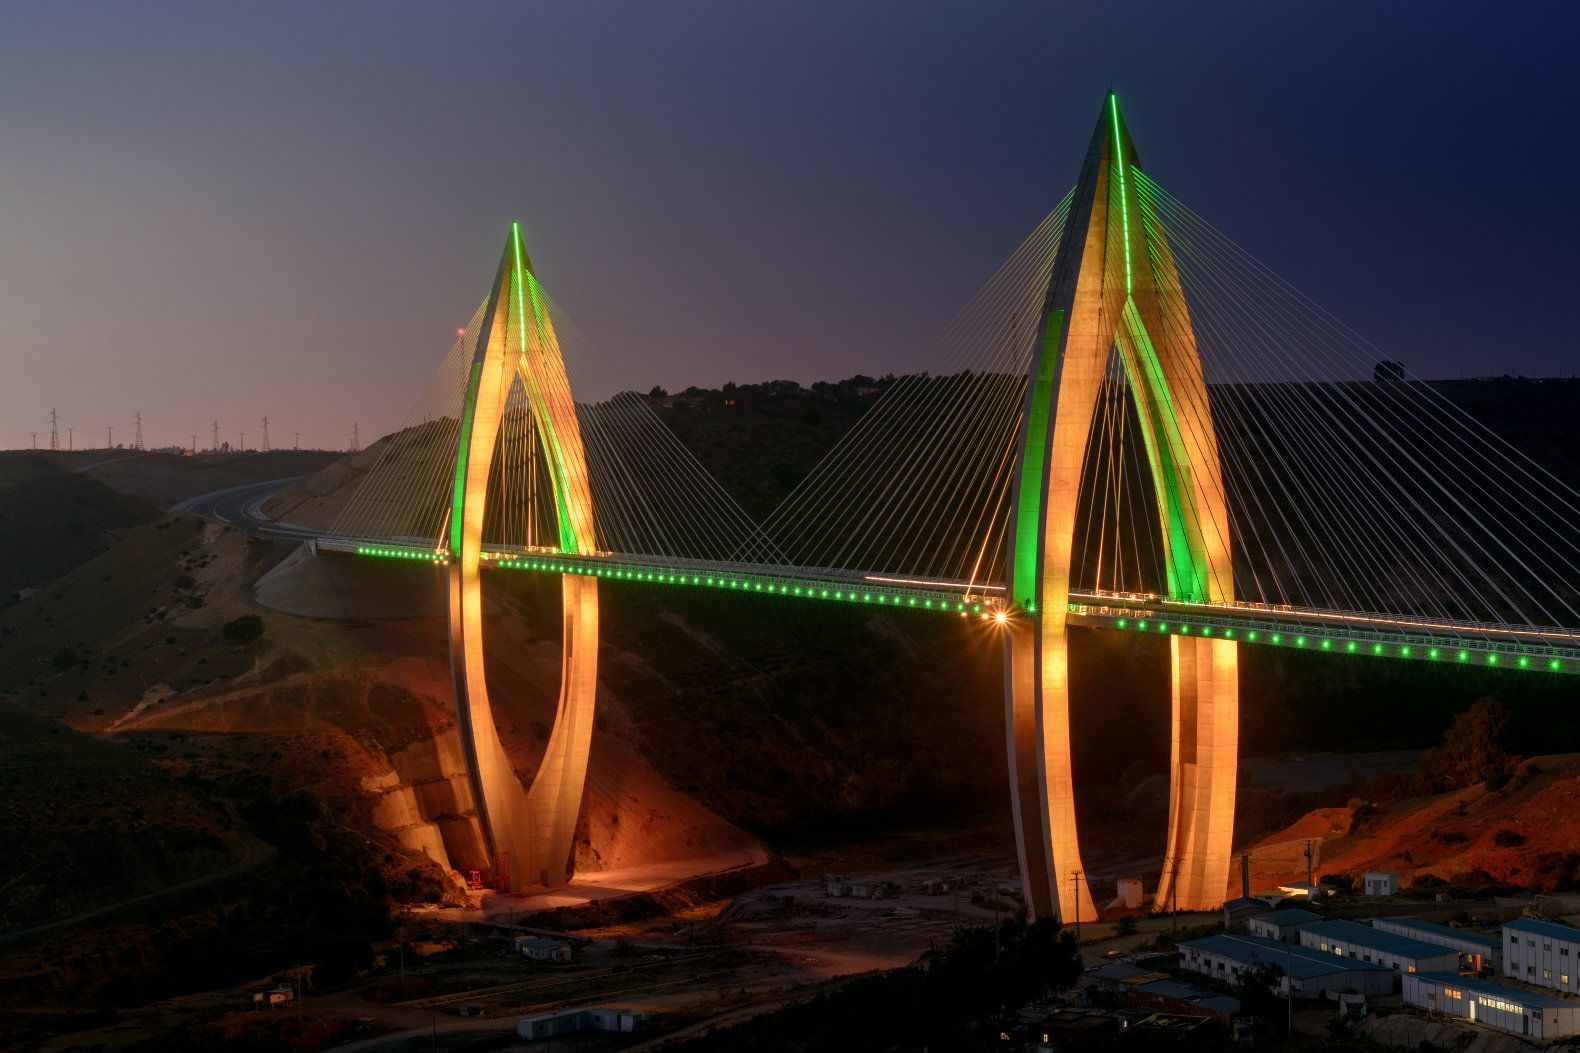 Longest cable stayed bridge in africa lit up with philips leds longest cable stayed bridge in africa lit up with philips leds buycottarizona